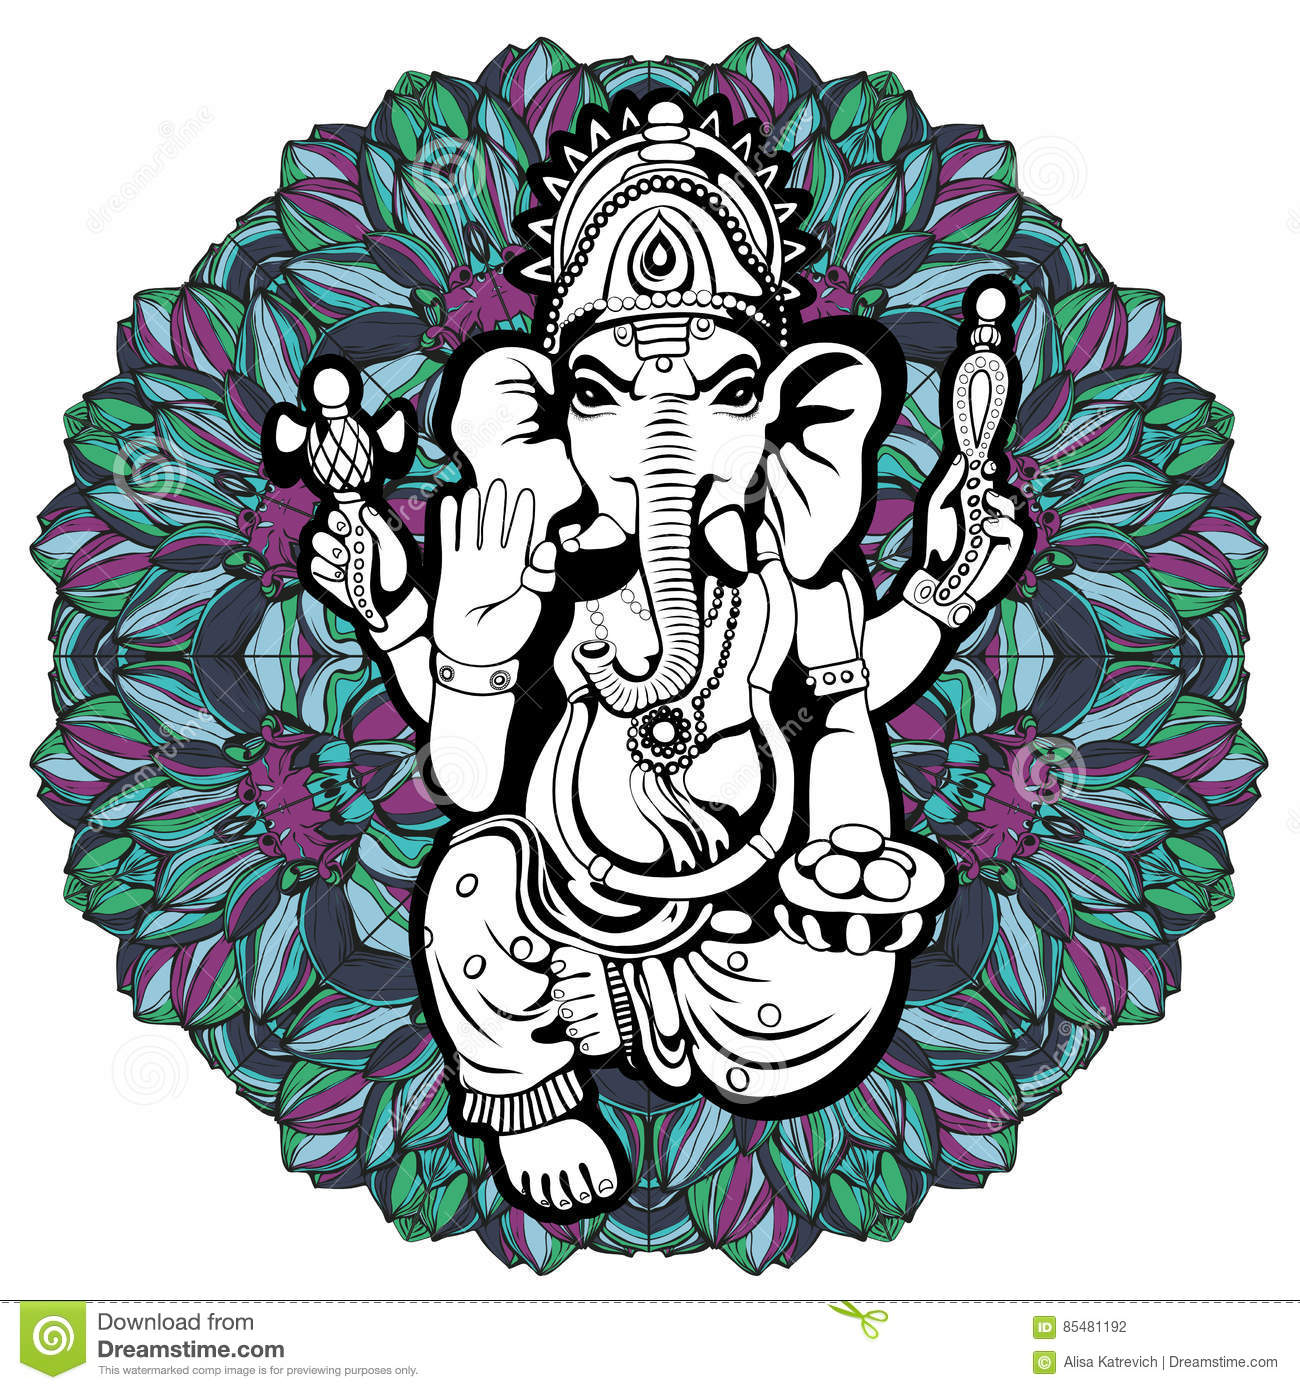 Lord ganesha sketch on a background vector